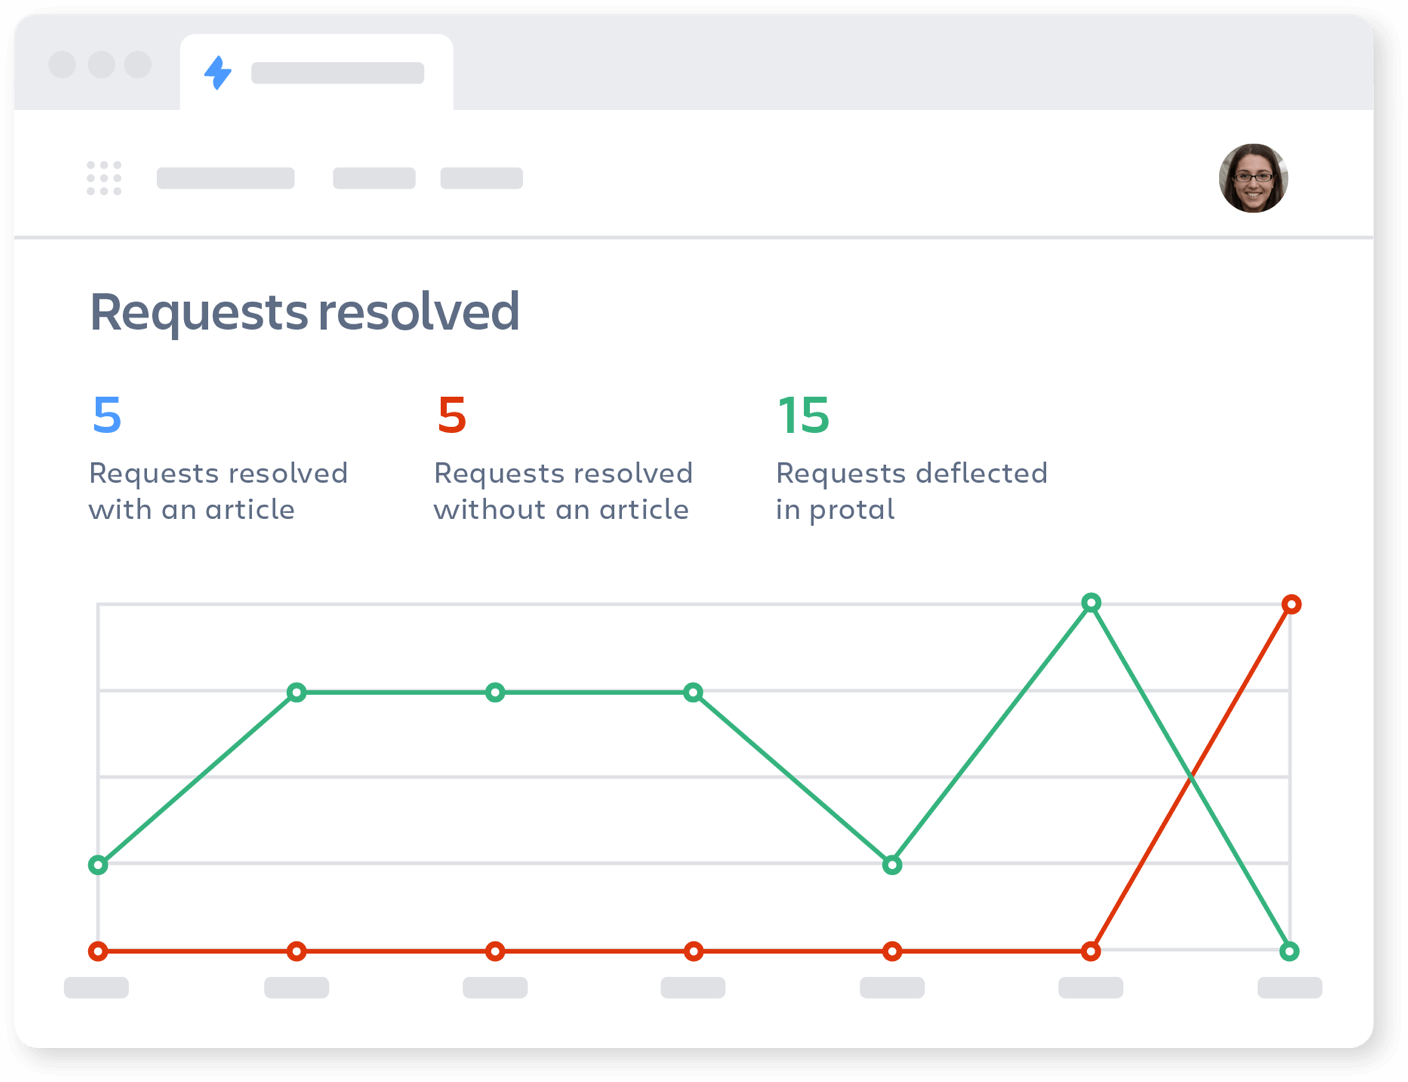 Graph of requests resolved